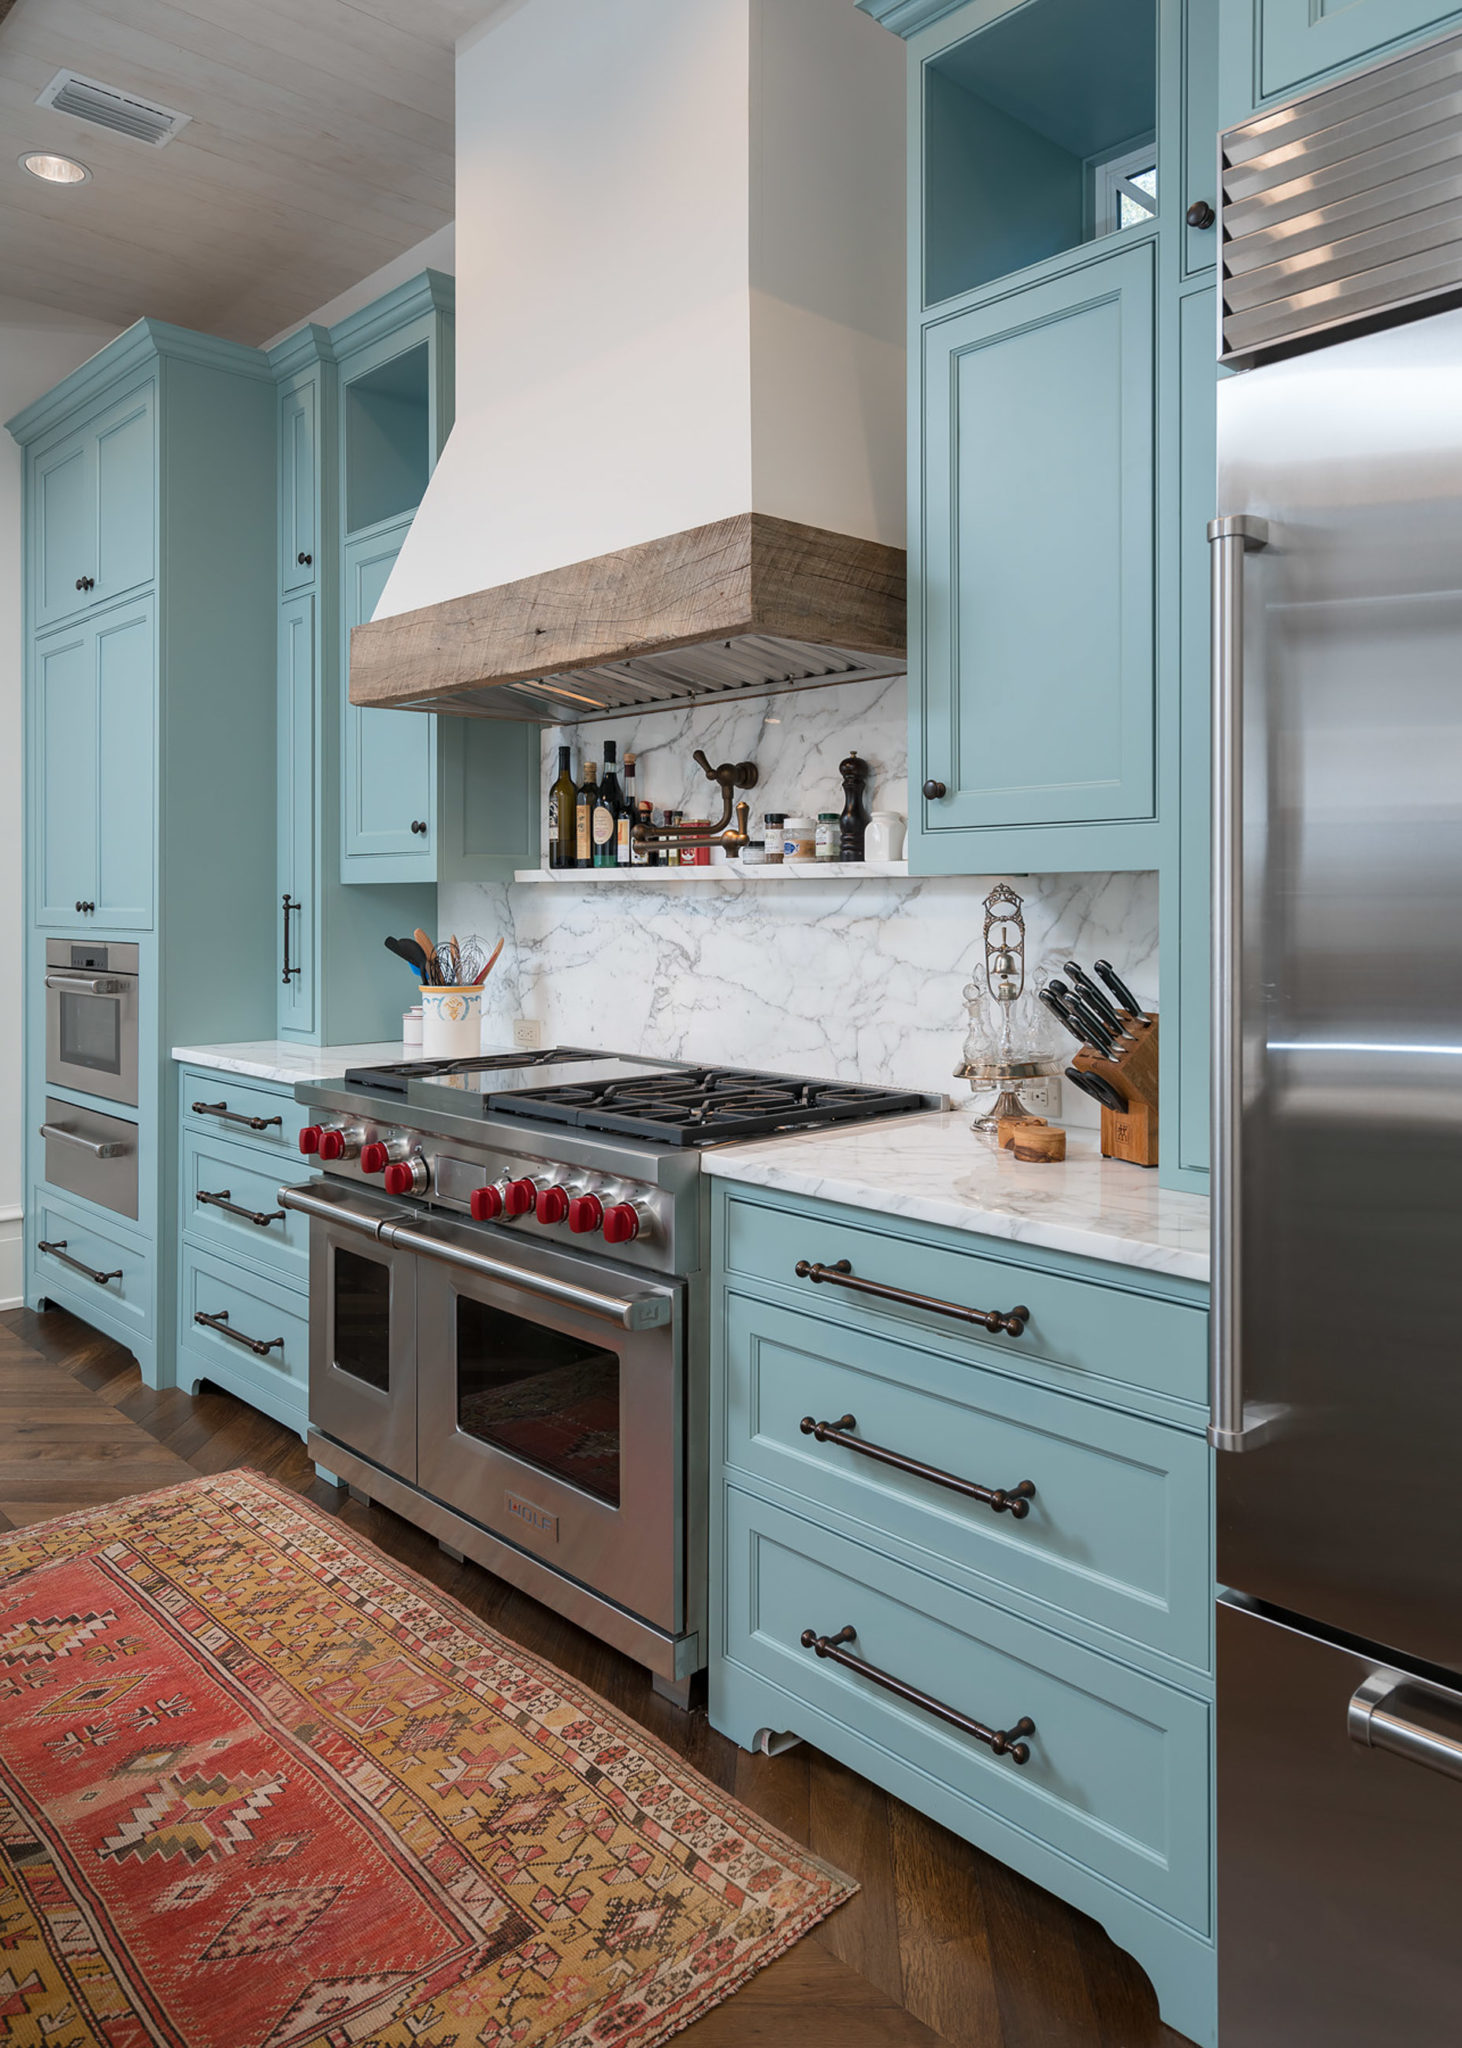 Fine Sky Kitchen Collection - Kitchen Cabinets | Ideas & Inspiration ...